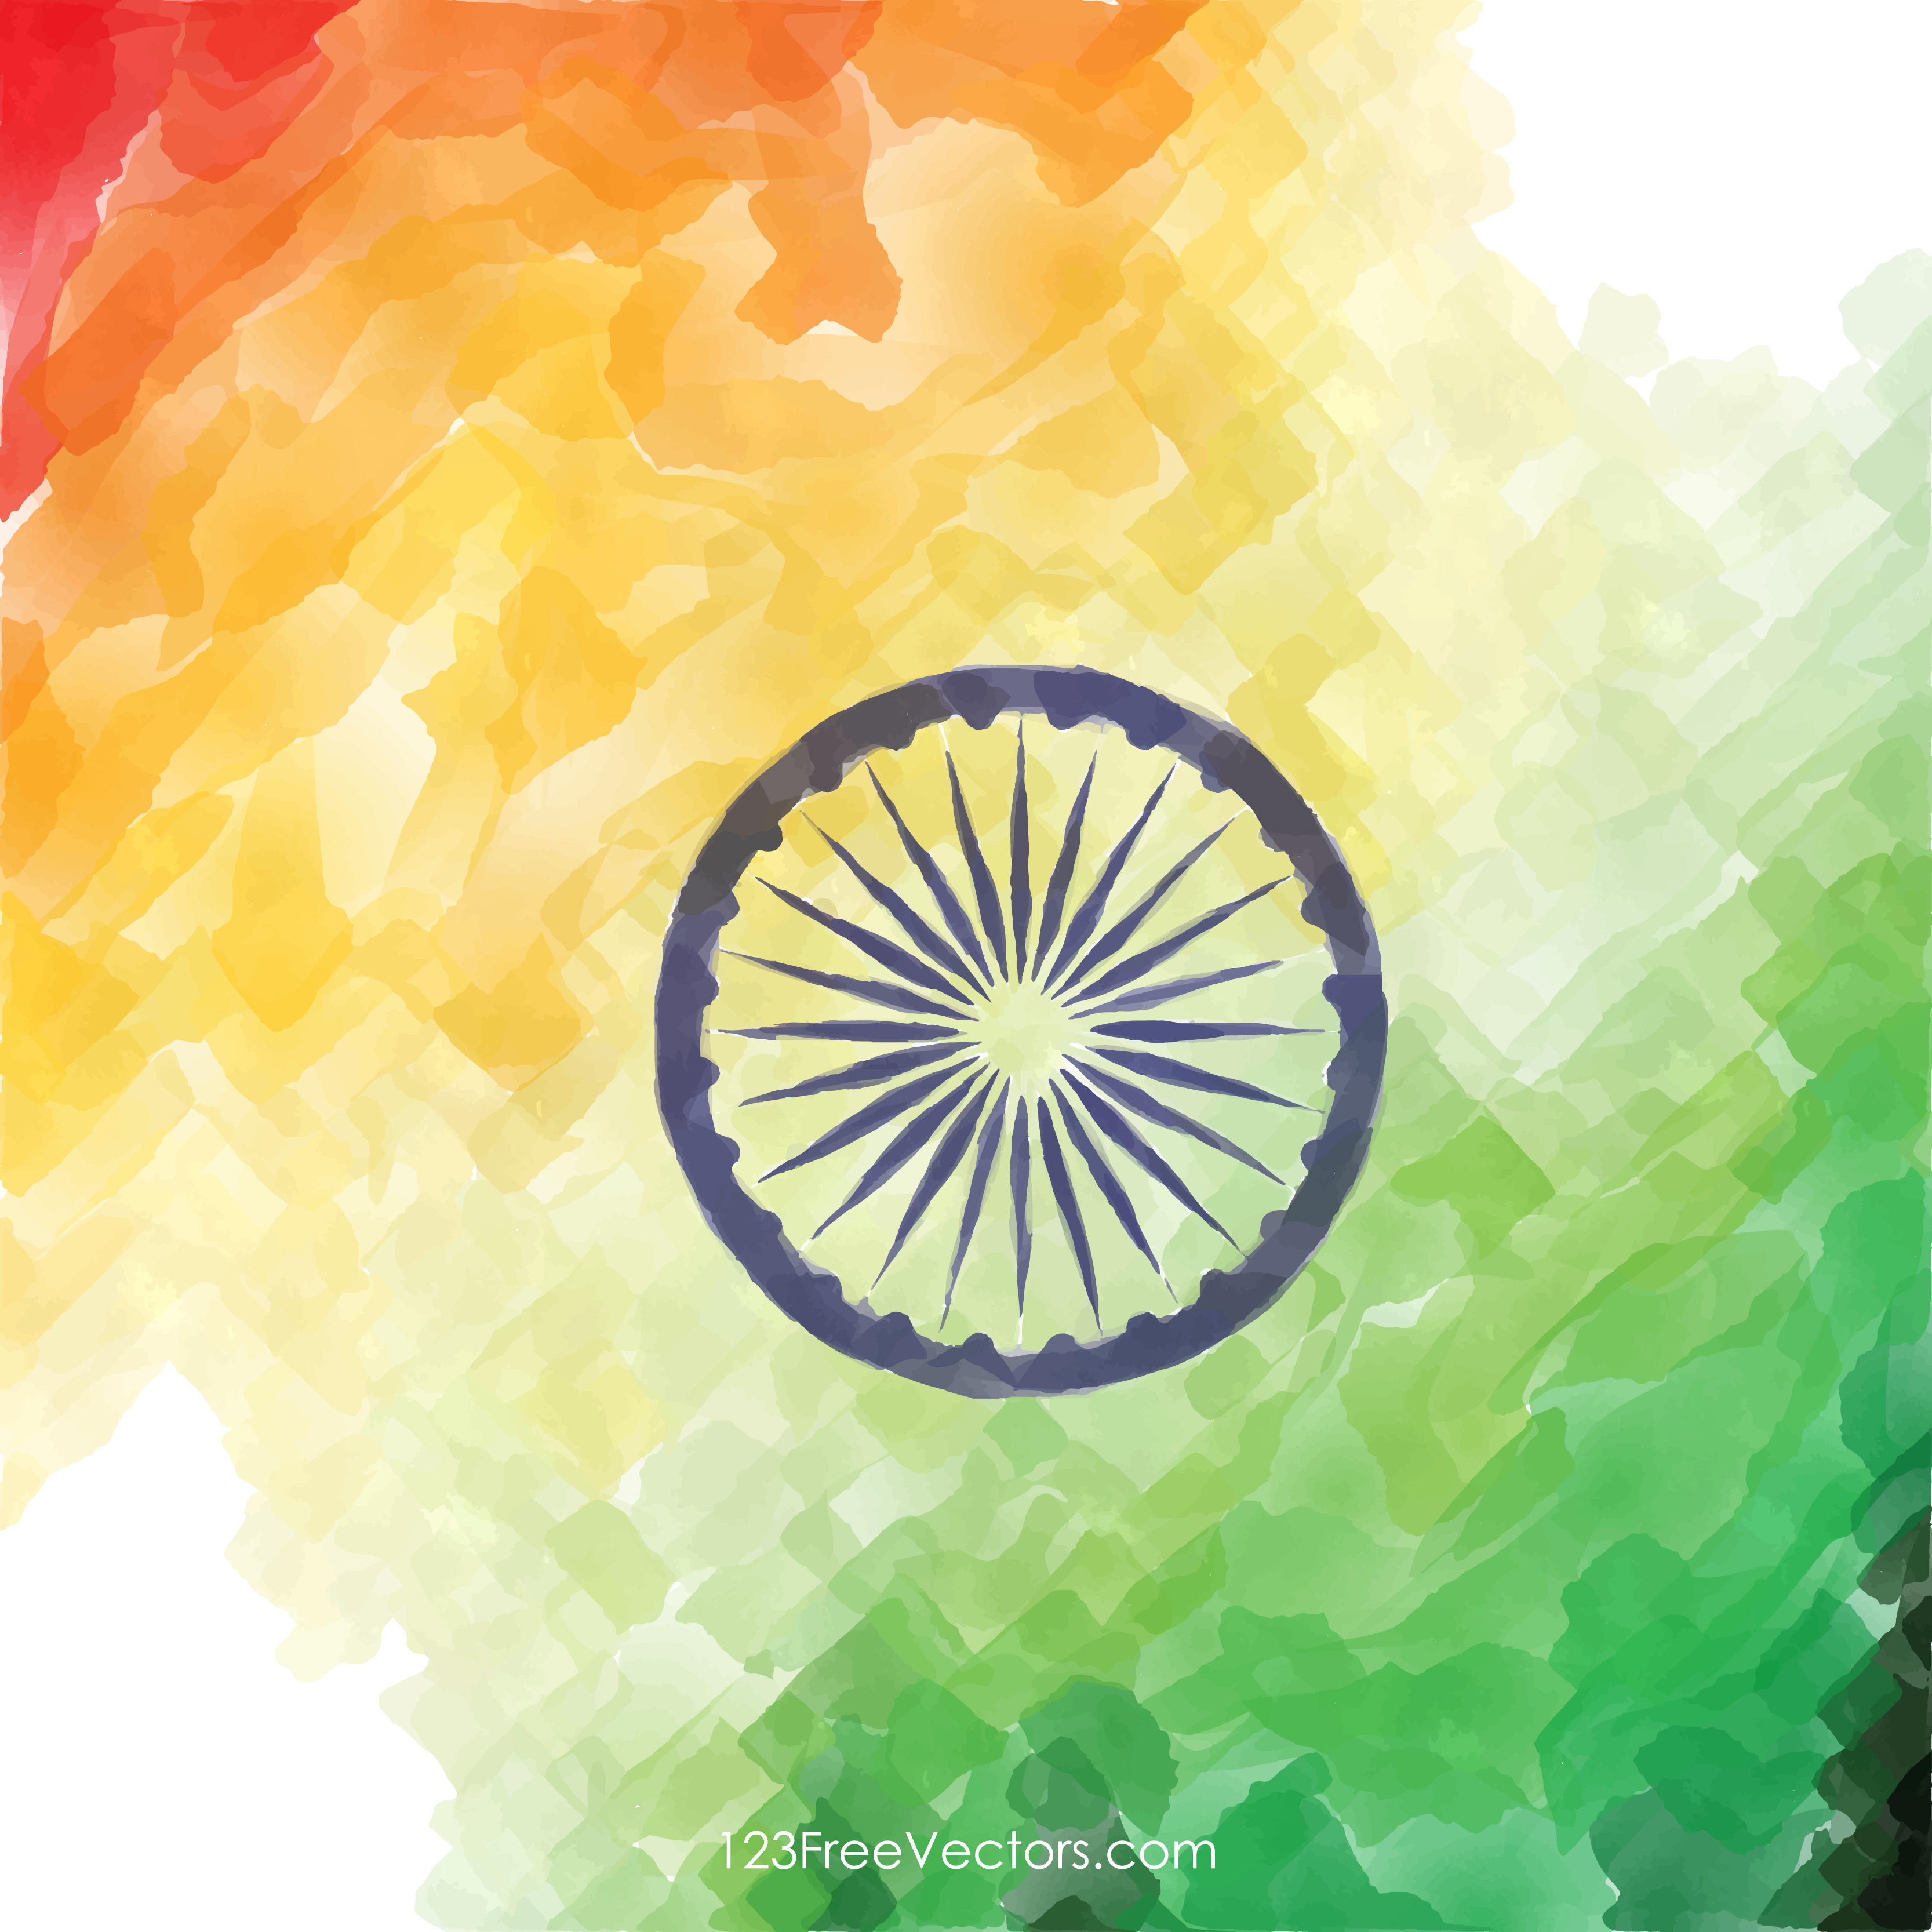 Creative Watercolor Indian Flag Background Image.